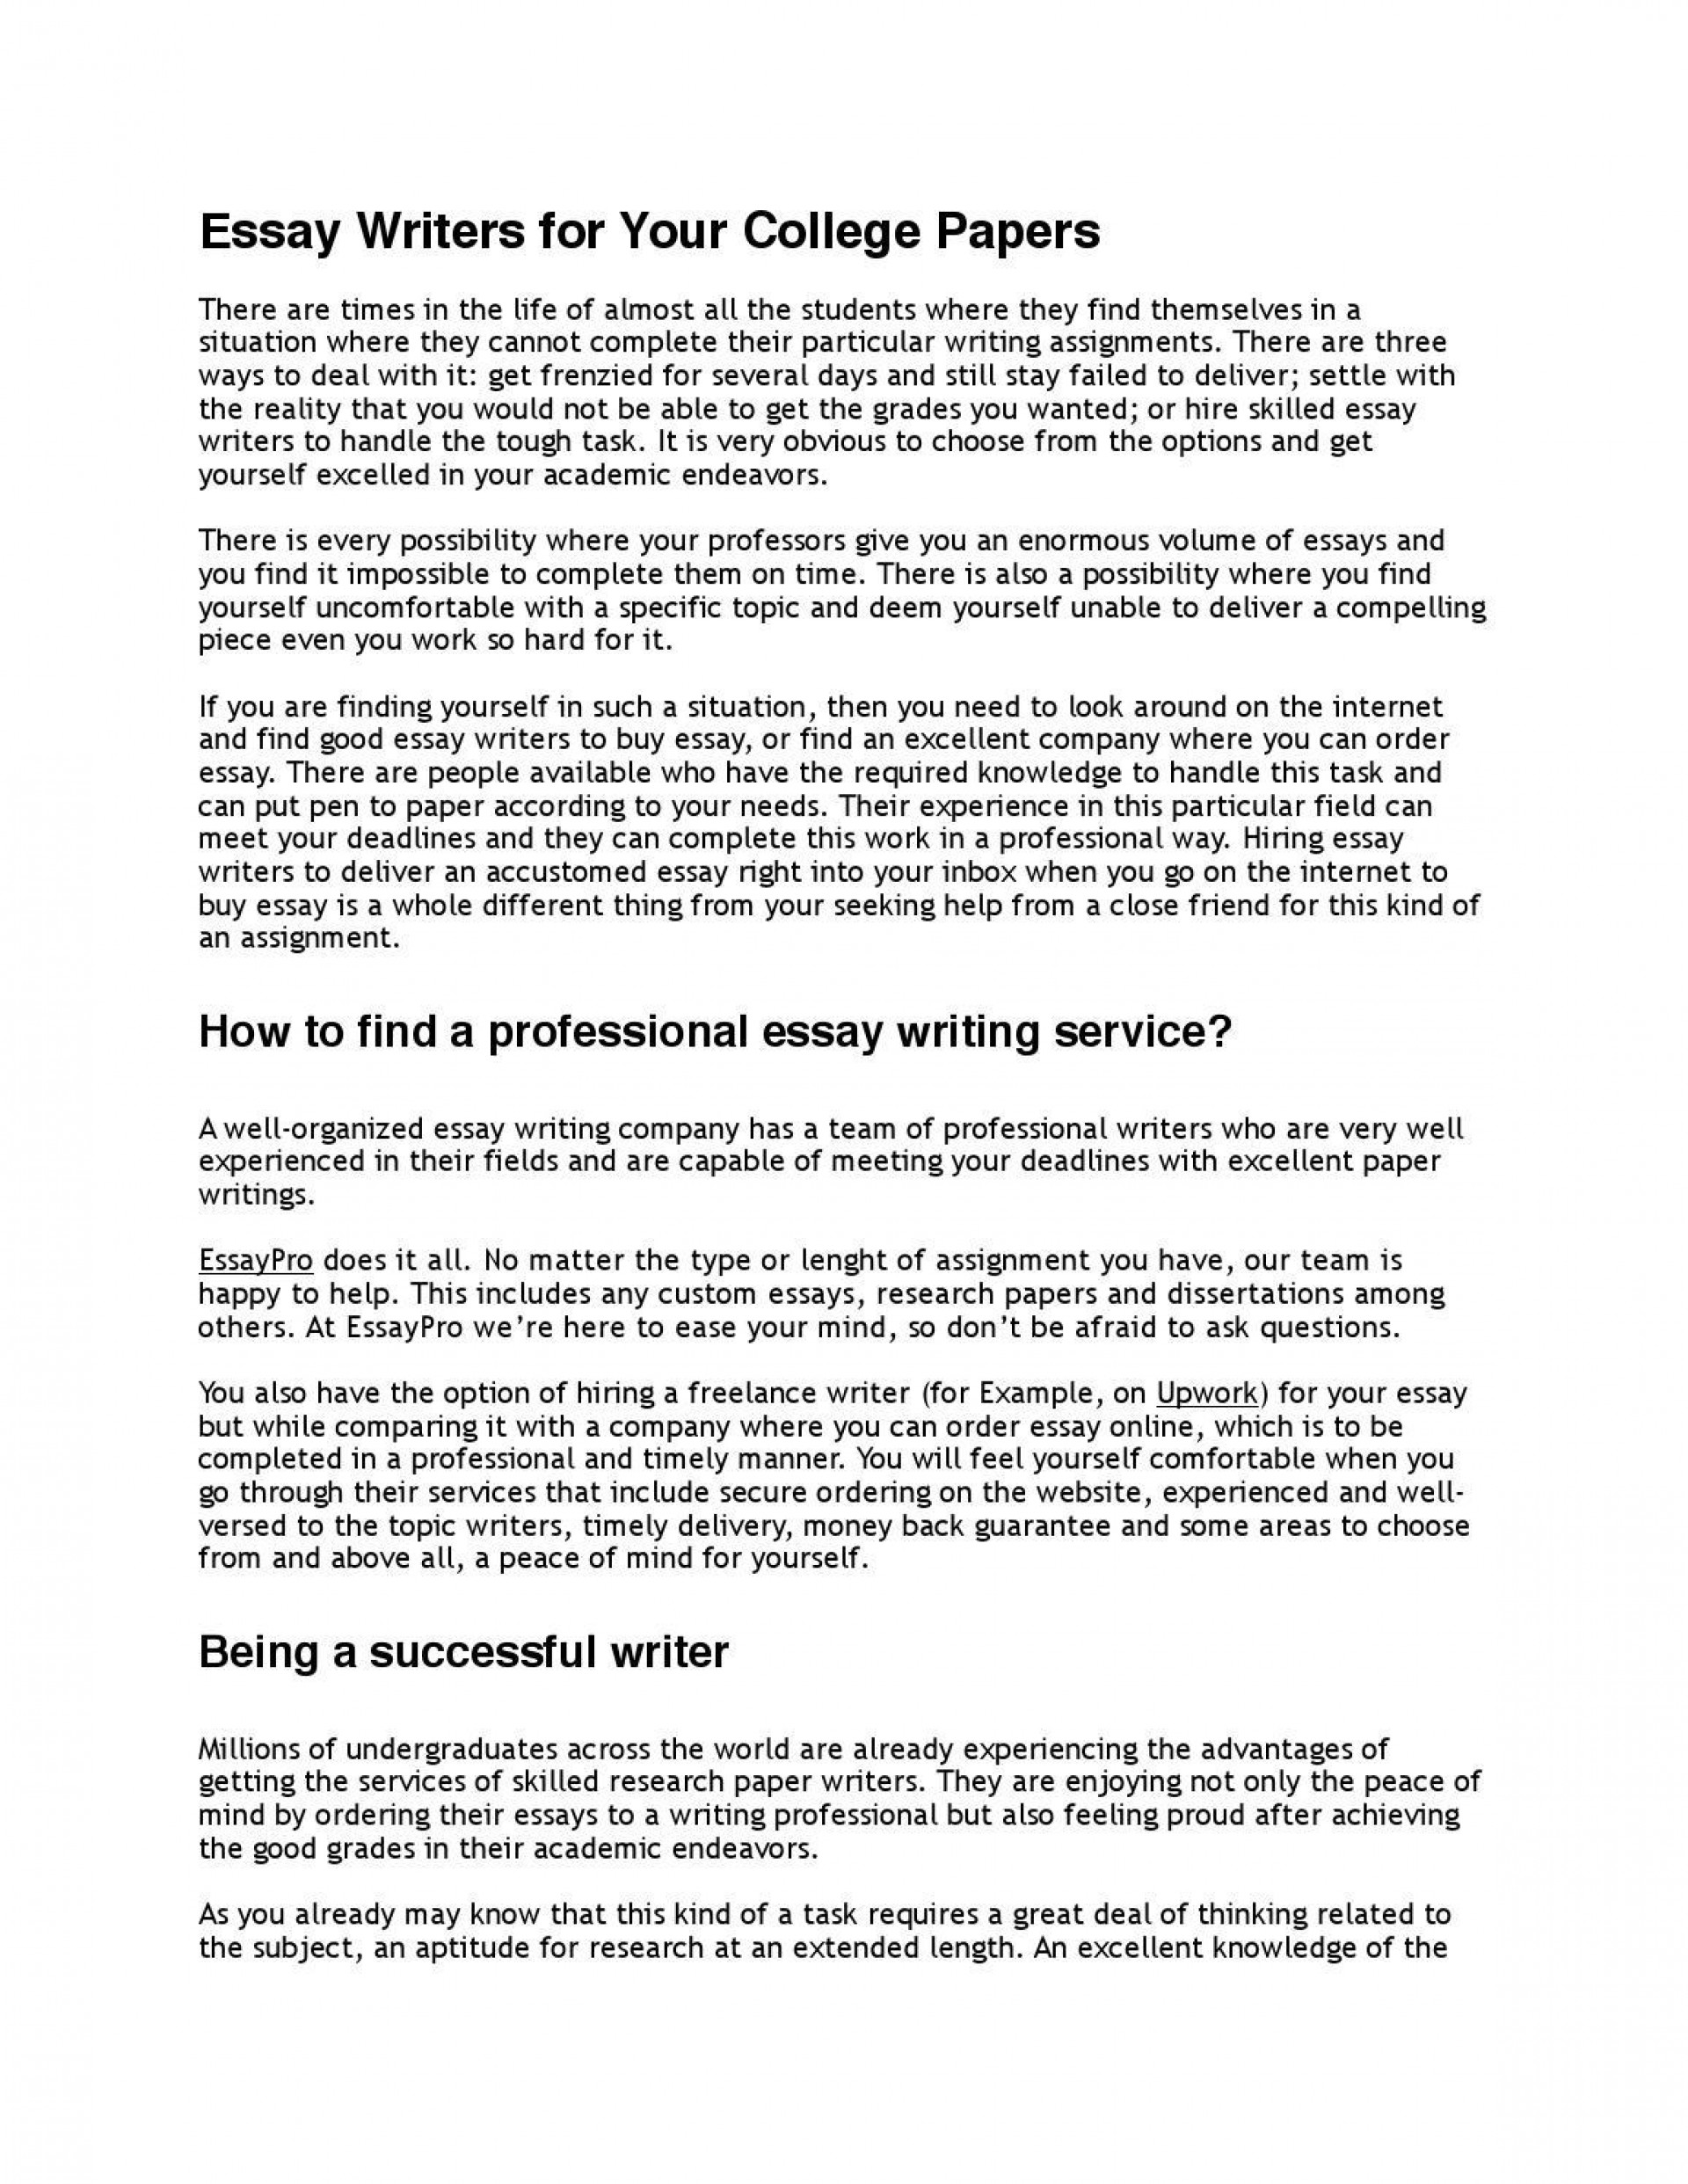 006 Who Are You Essay Page 1fit11562c1496ssl1 Rare Motivates Inspires Examples College 1920